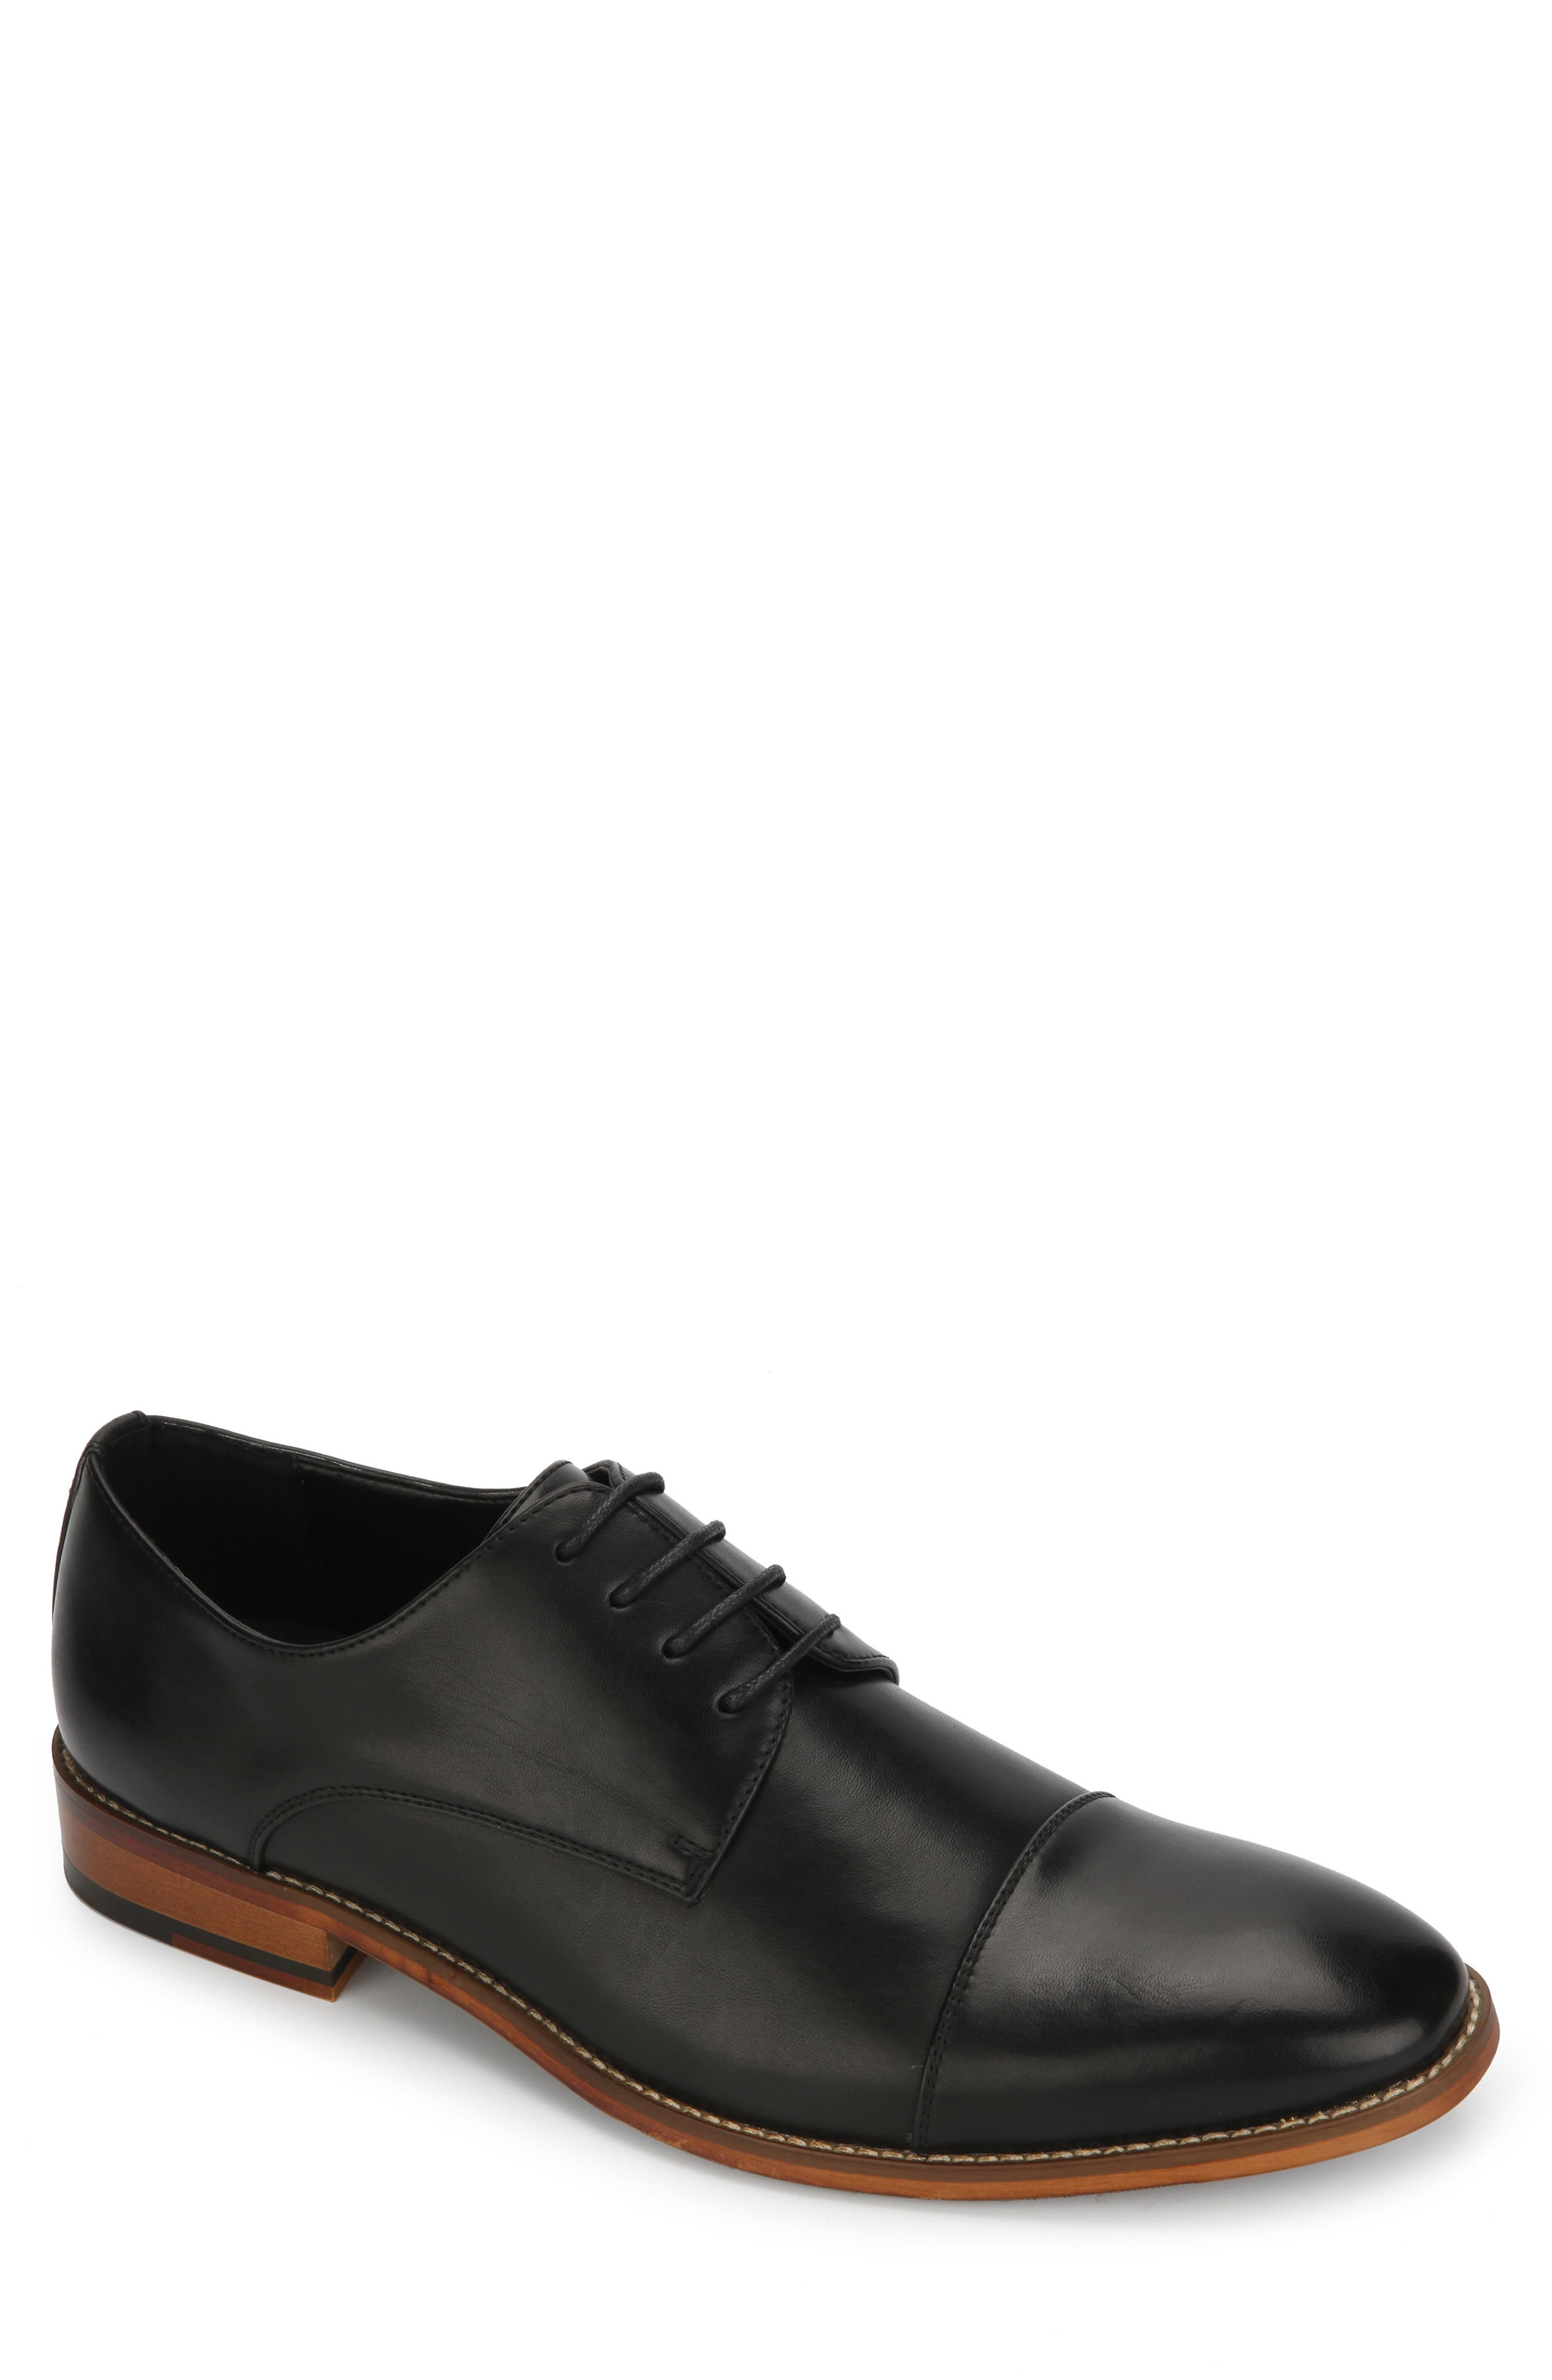 REACTION KENNETH COLE Blake Cap Toe Derby, Main, color, BLACK